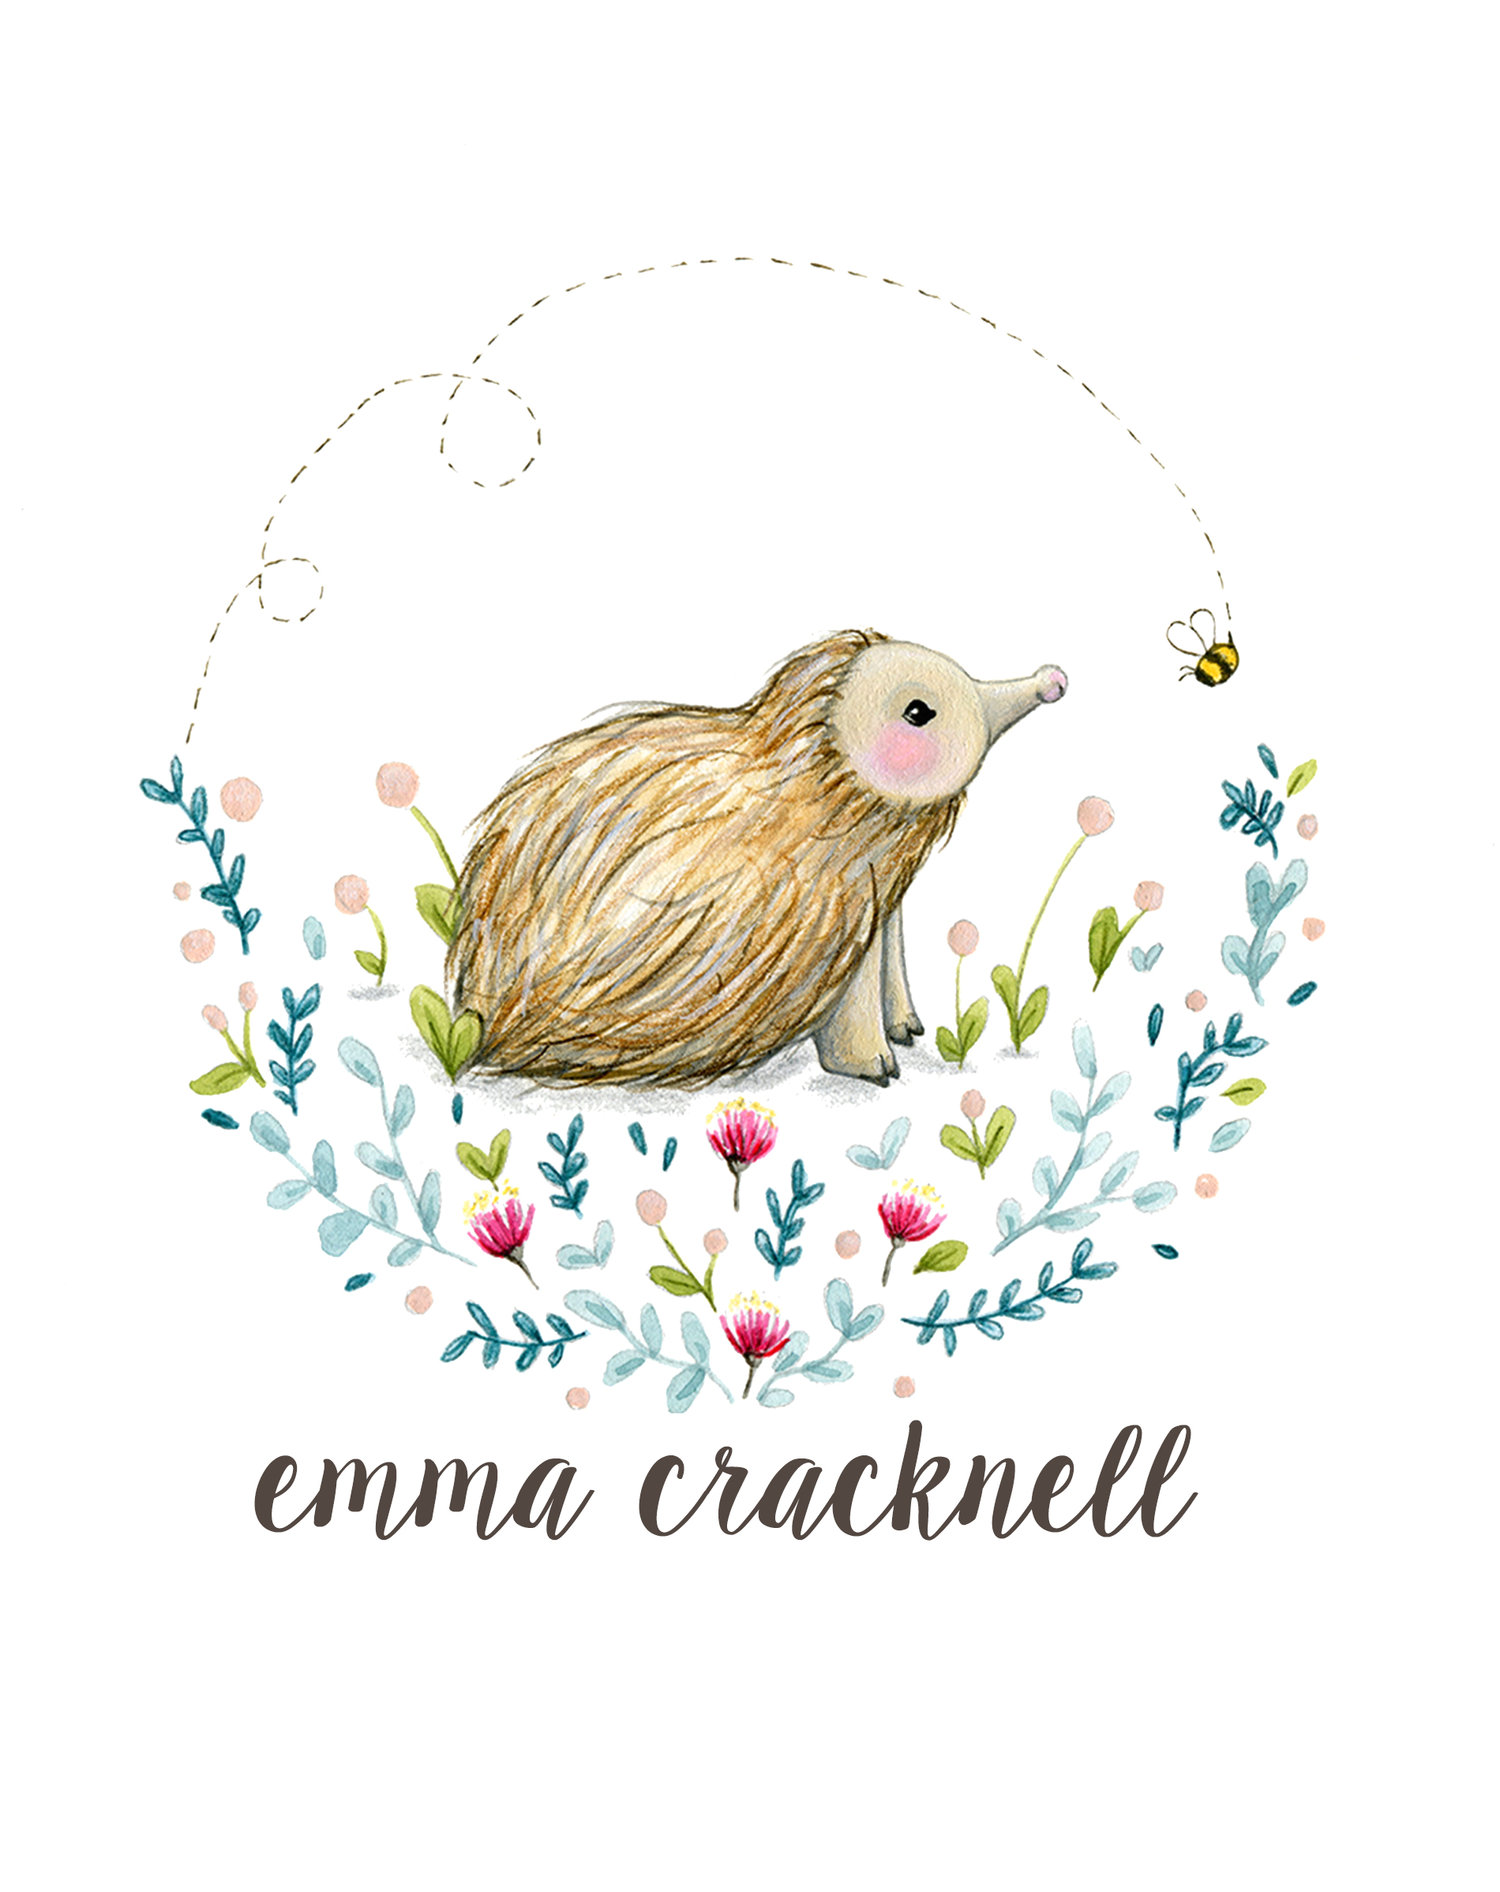 Emma Cracknell Illustration